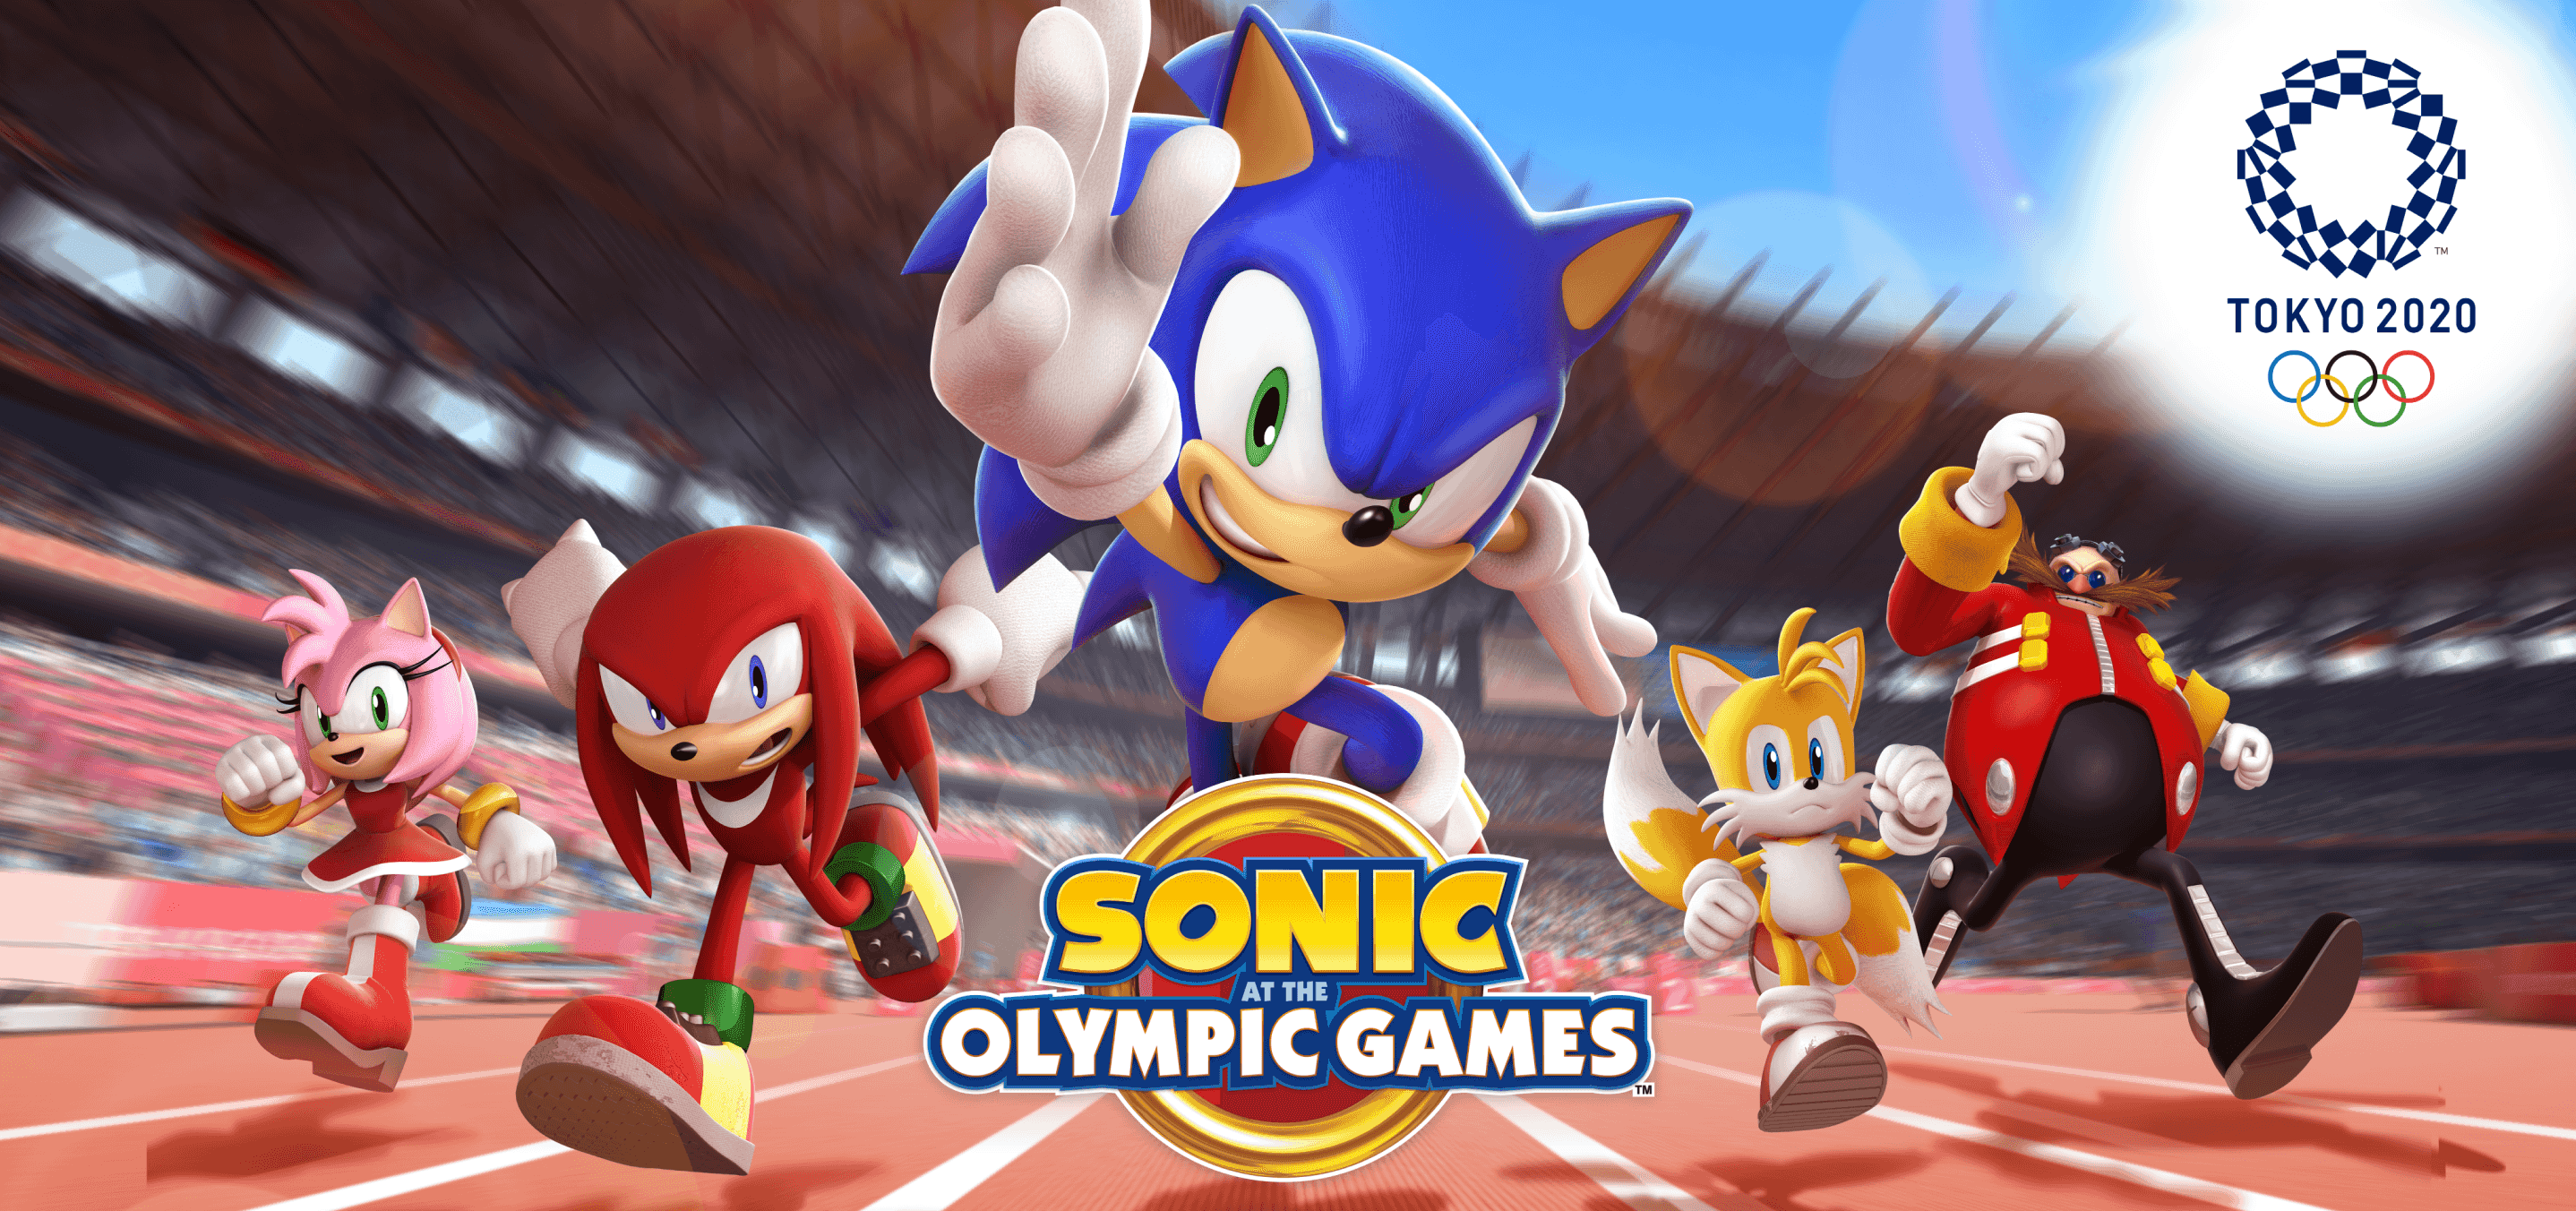 Sonic at the Olympic Games – Tokyo 20™